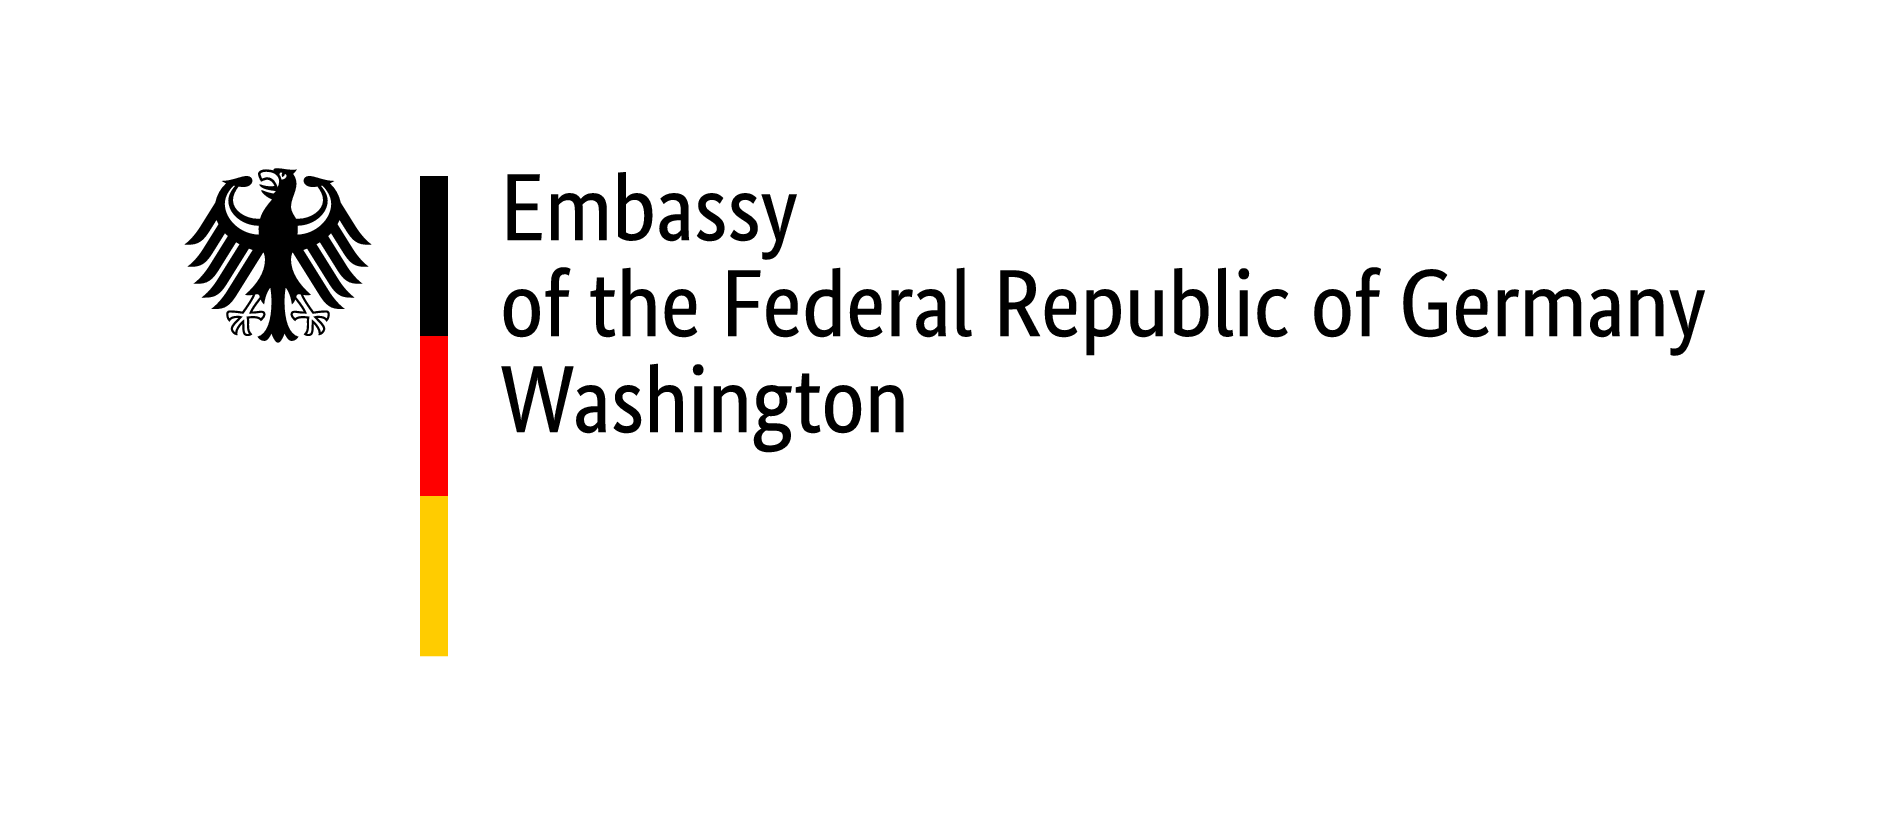 Logo: Embassy of the Federal Republic of Germany in Washington, D.C.